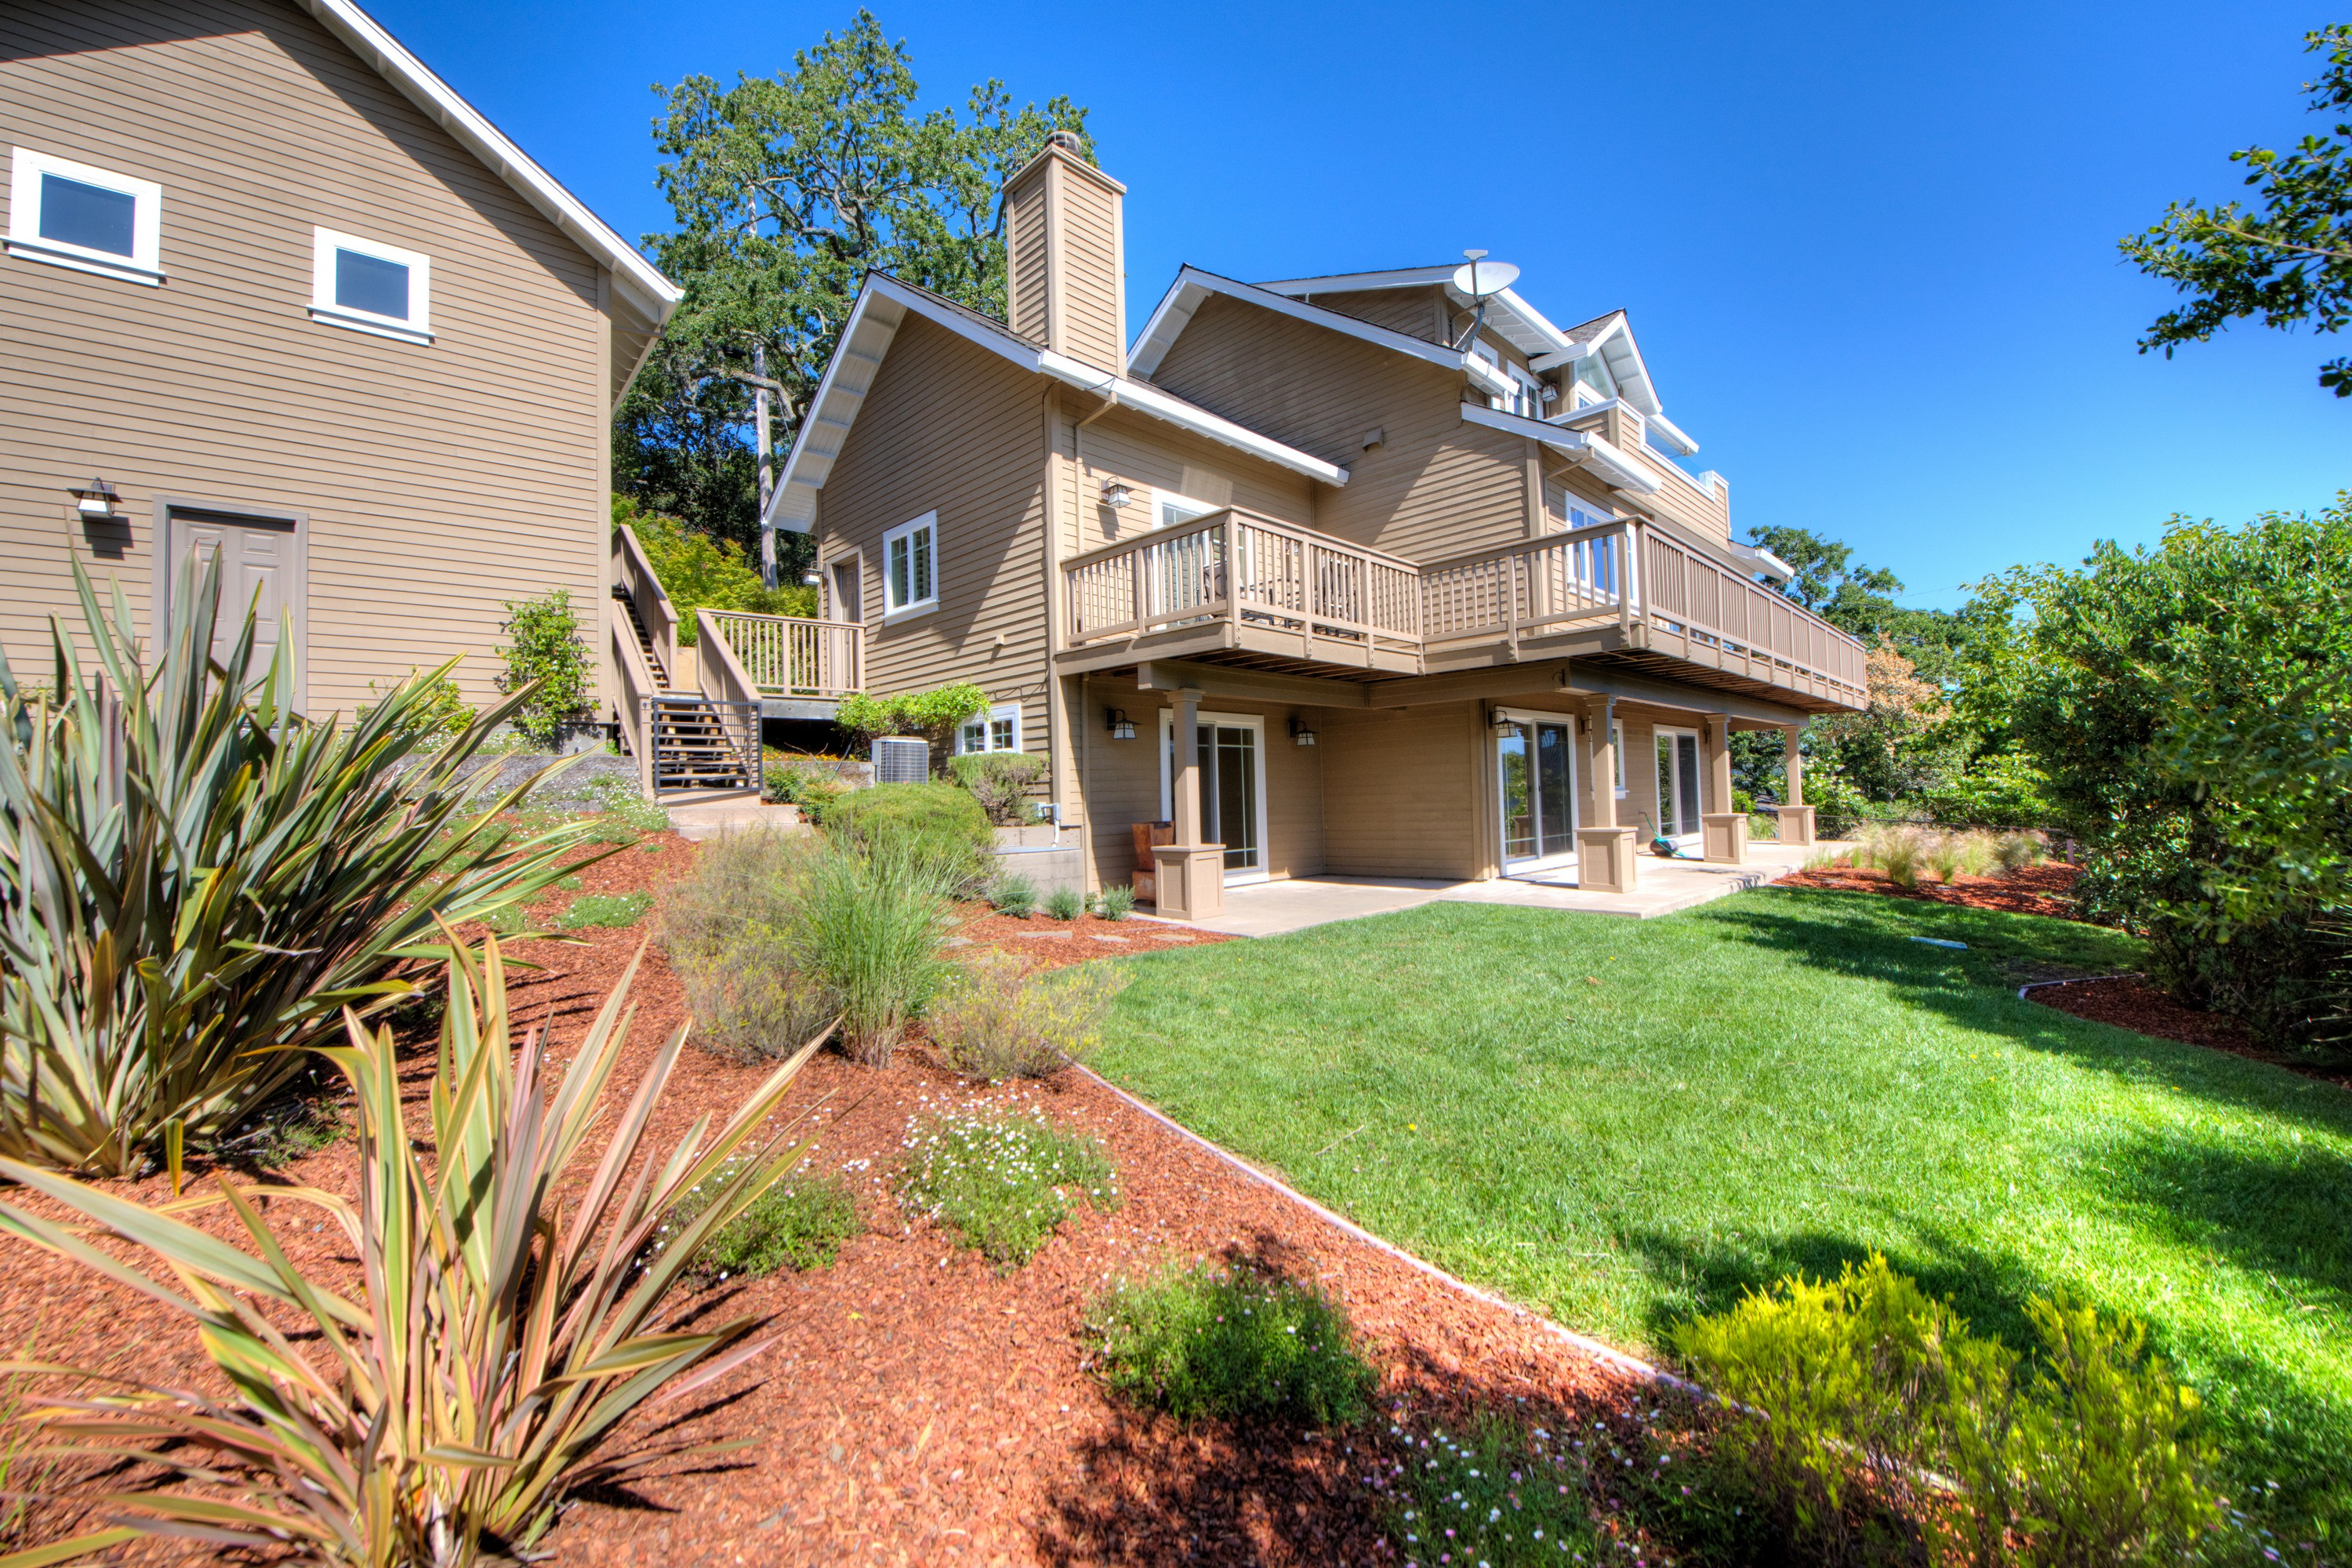 Single Family Home for Sale at Classic Contemporary 78 Southern Heights Blvd San Rafael, California 94901 United States